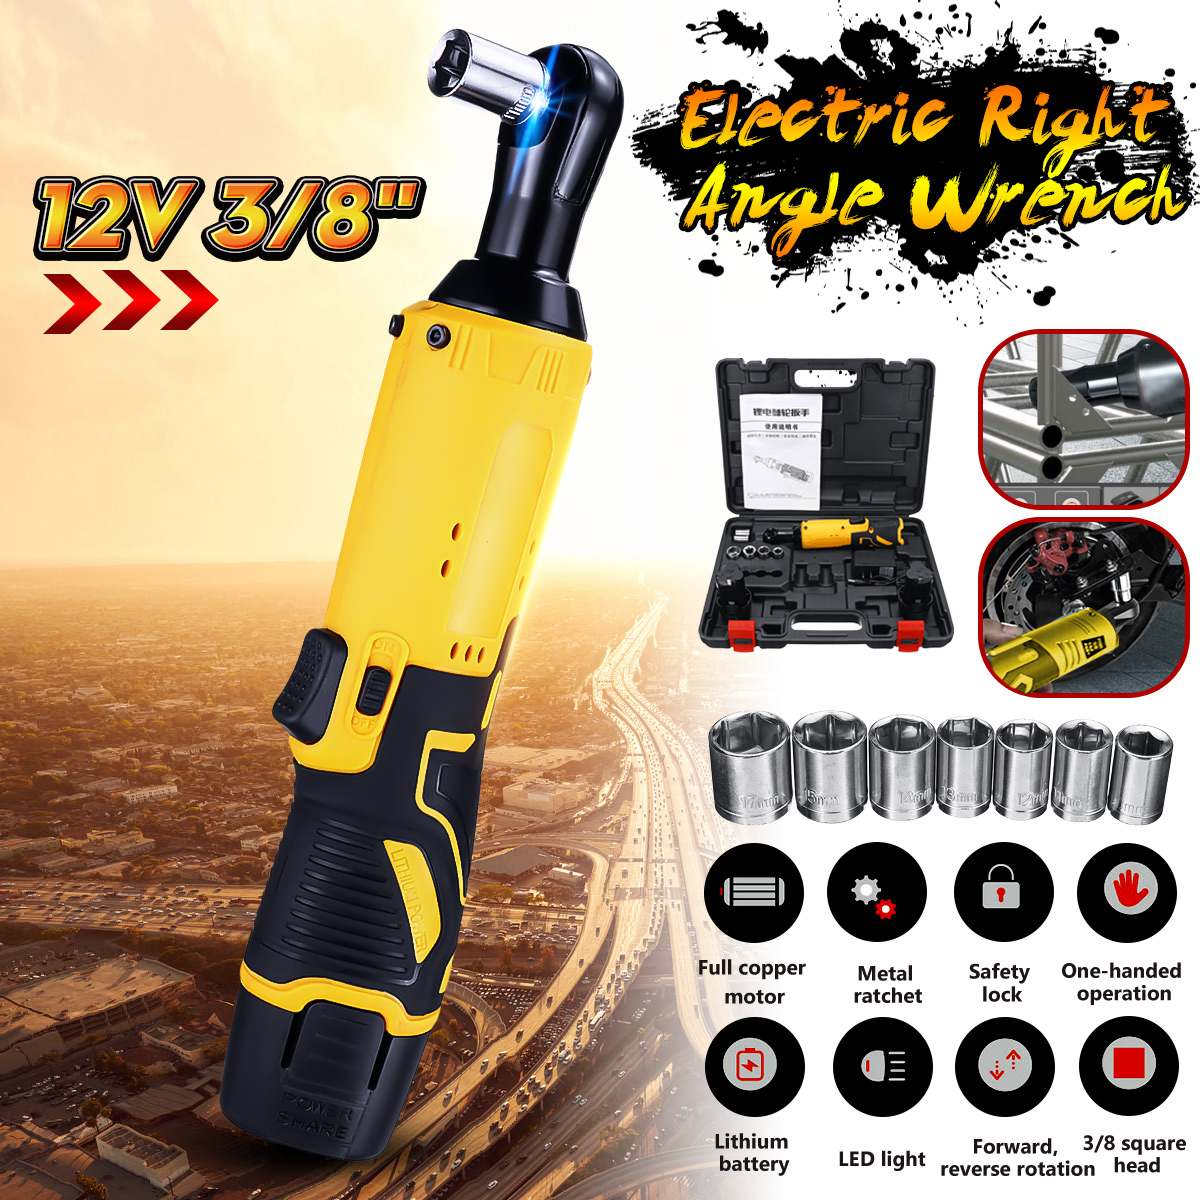 12V Electric Wrench LED Kit 3/8 Cordless Ratchet Wrench Rechargeable Scaffolding 45NM Torque Ratchet Wrench tool set12V Electric Wrench LED Kit 3/8 Cordless Ratchet Wrench Rechargeable Scaffolding 45NM Torque Ratchet Wrench tool set